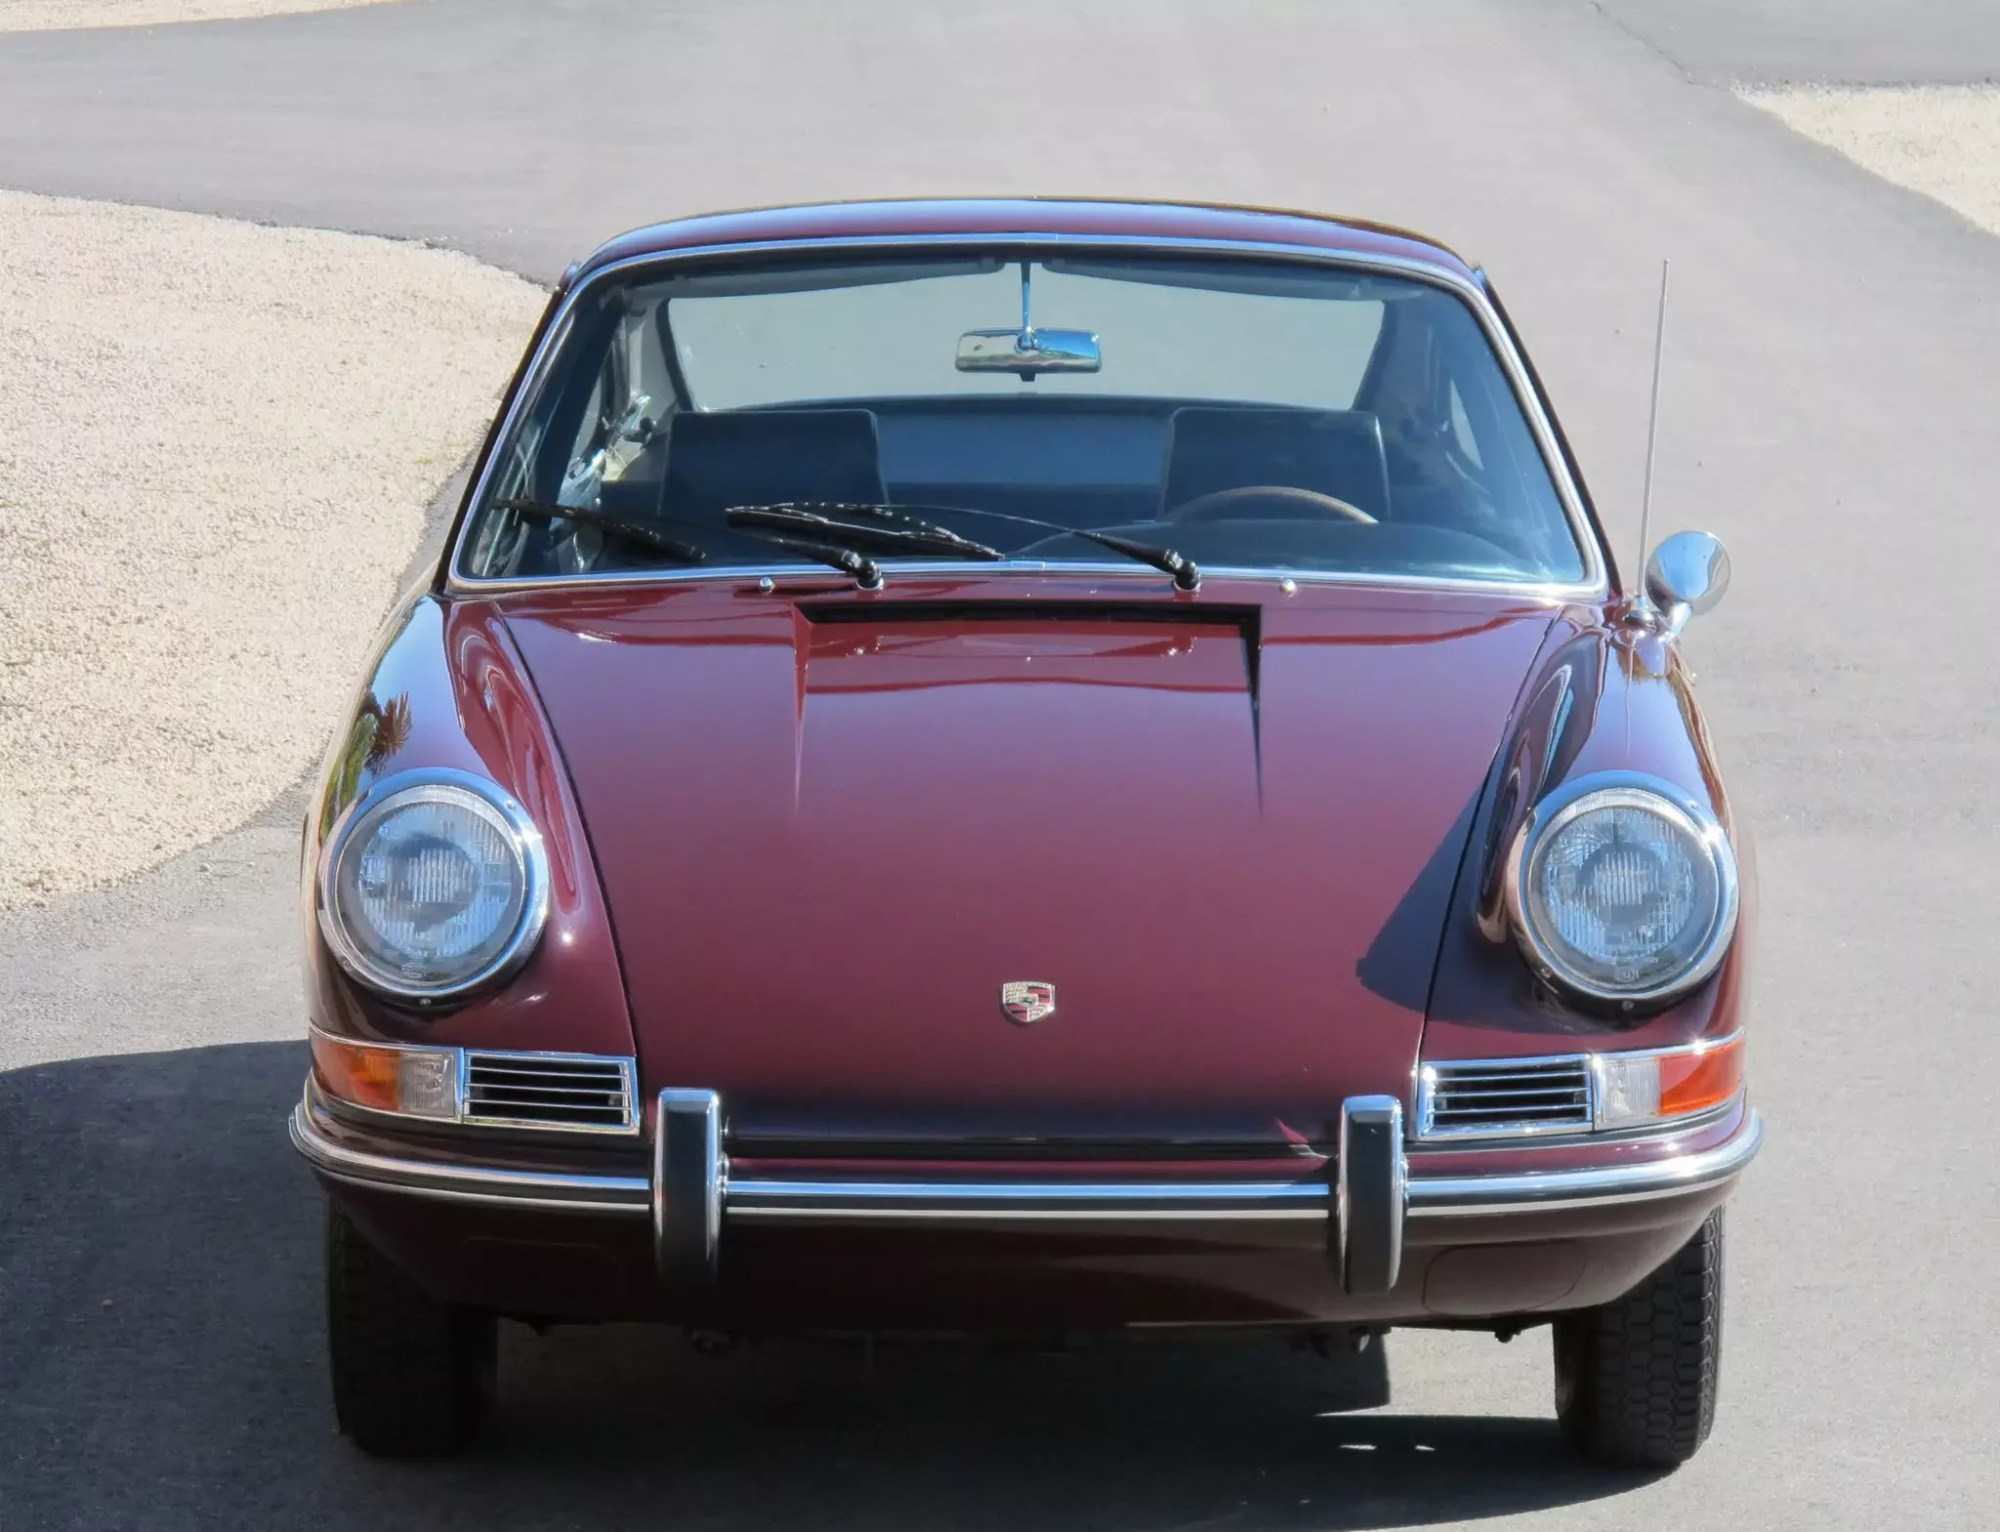 hight resolution of 1967 porsche 912 wiring diagram wiring libraryamazing 1967 porsche 911 wiring diagram ideas electrical system 1967